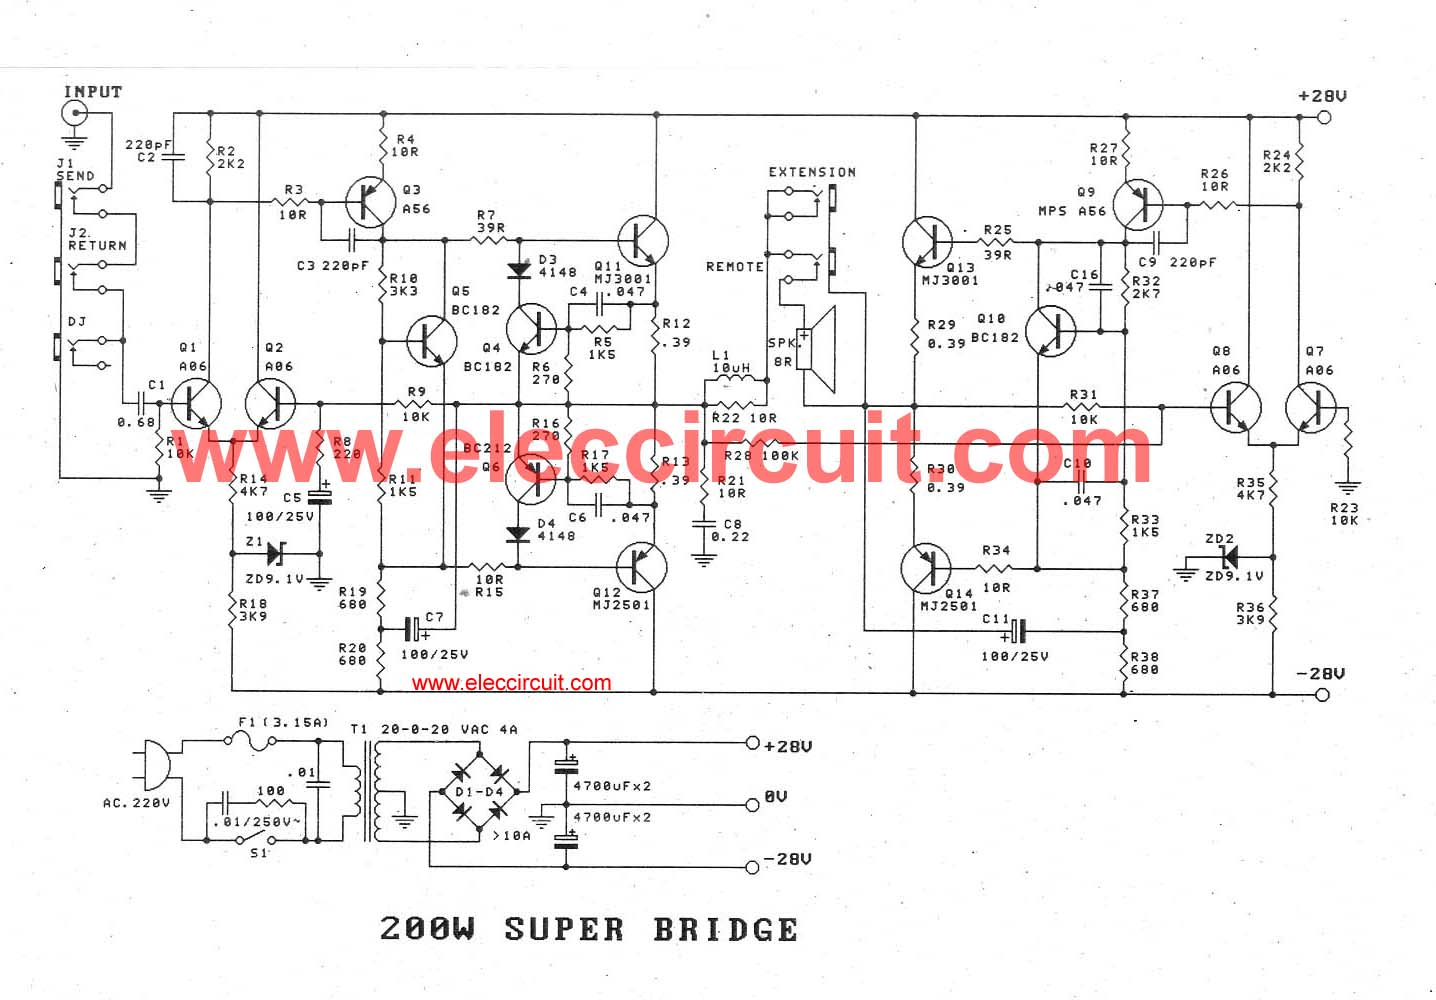 200w guitar amplifier circuit diagram with pcb layout  eleccircuit.com